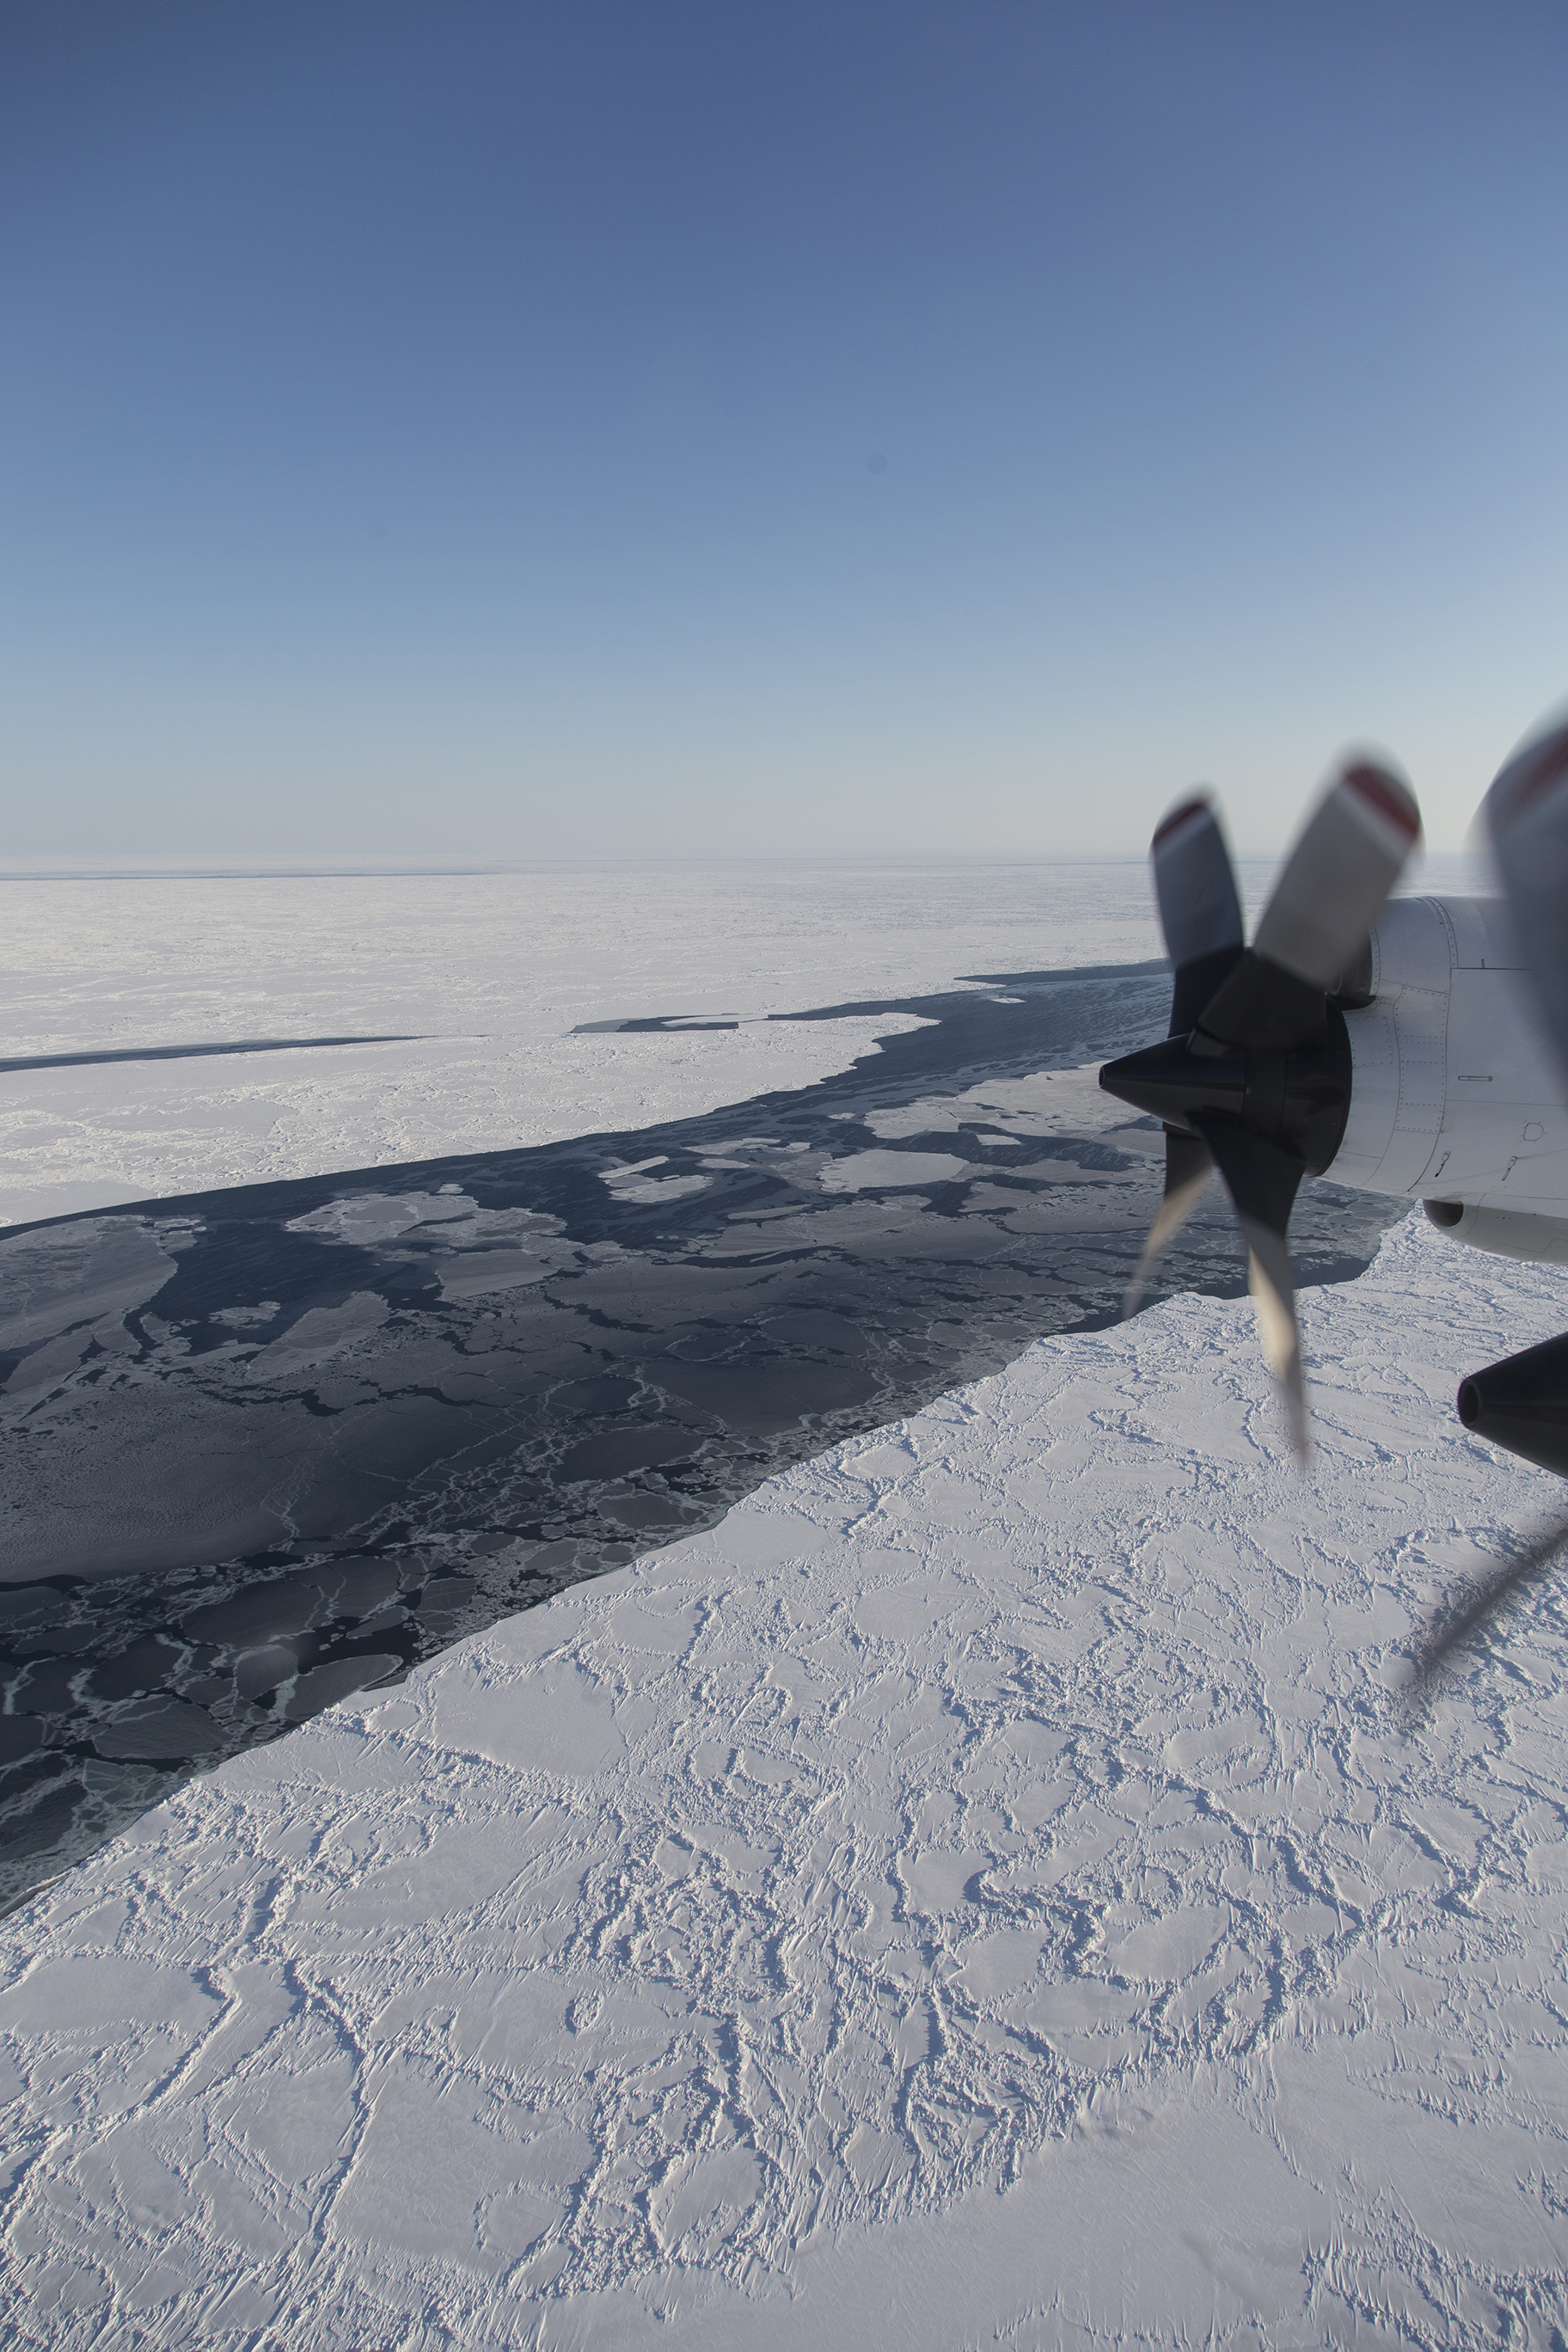 Operation IceBridge, NASA's aerial survey of polar ice, flies over a lead, or opening in the sea ice cover, near the Alaskan coast.